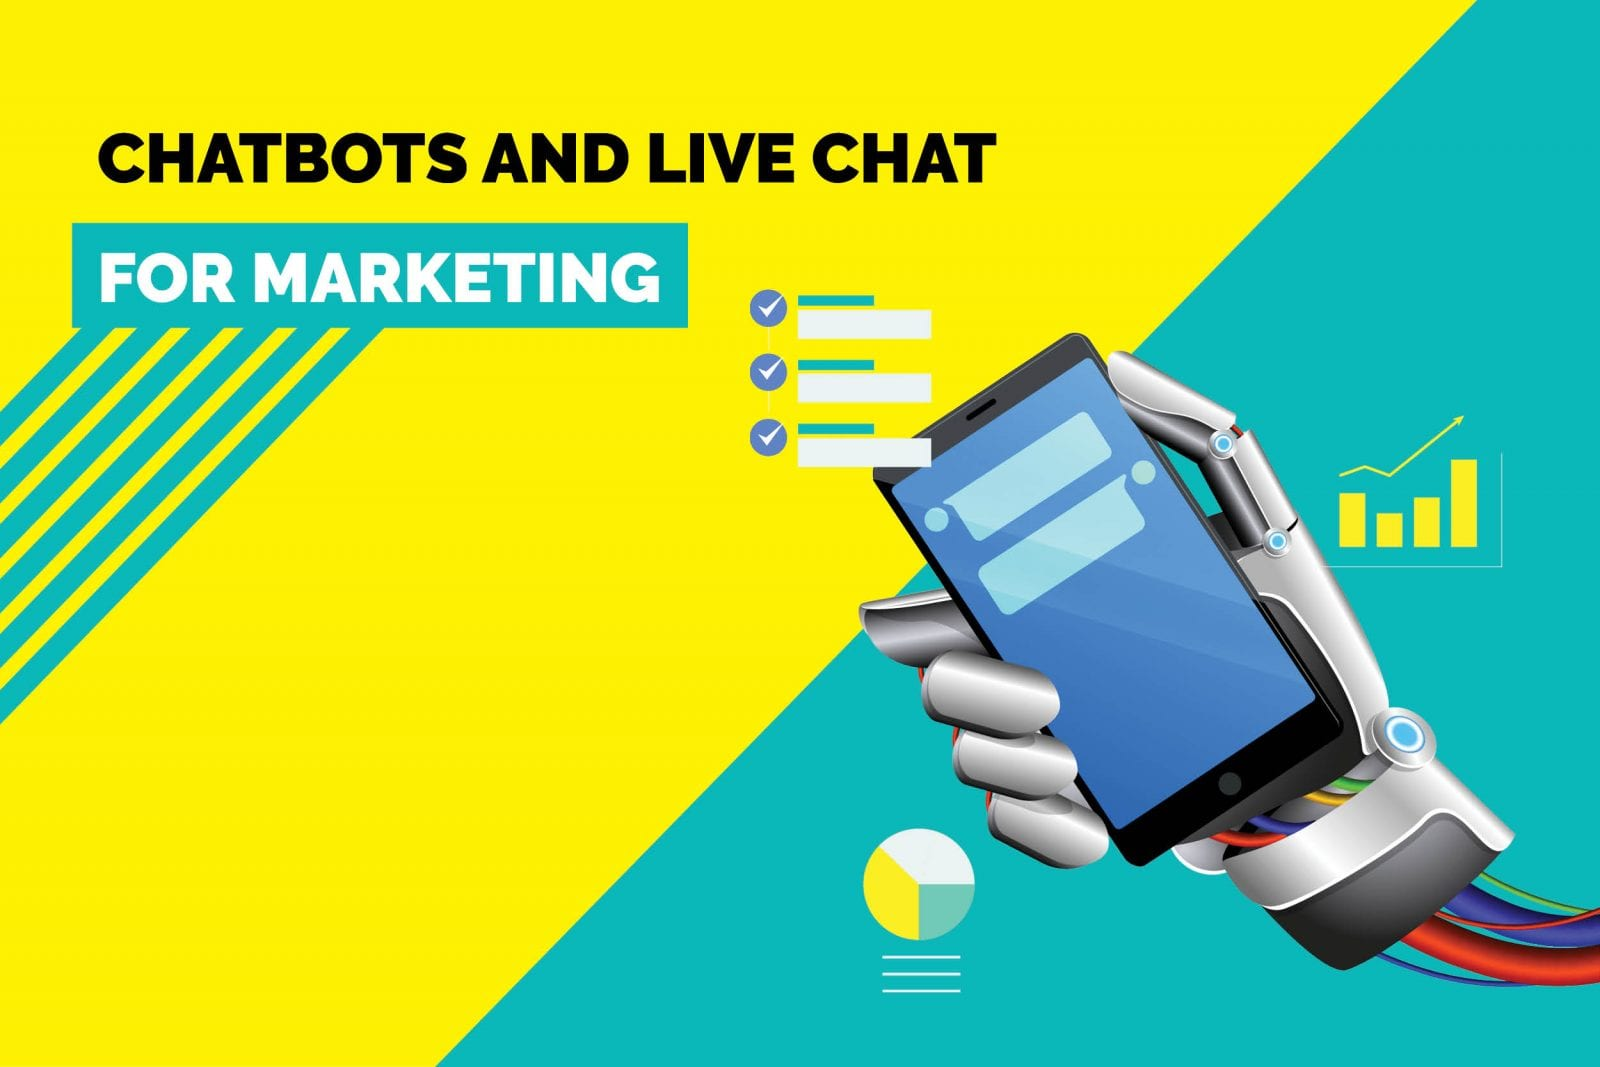 chatbots and live chat for marketing